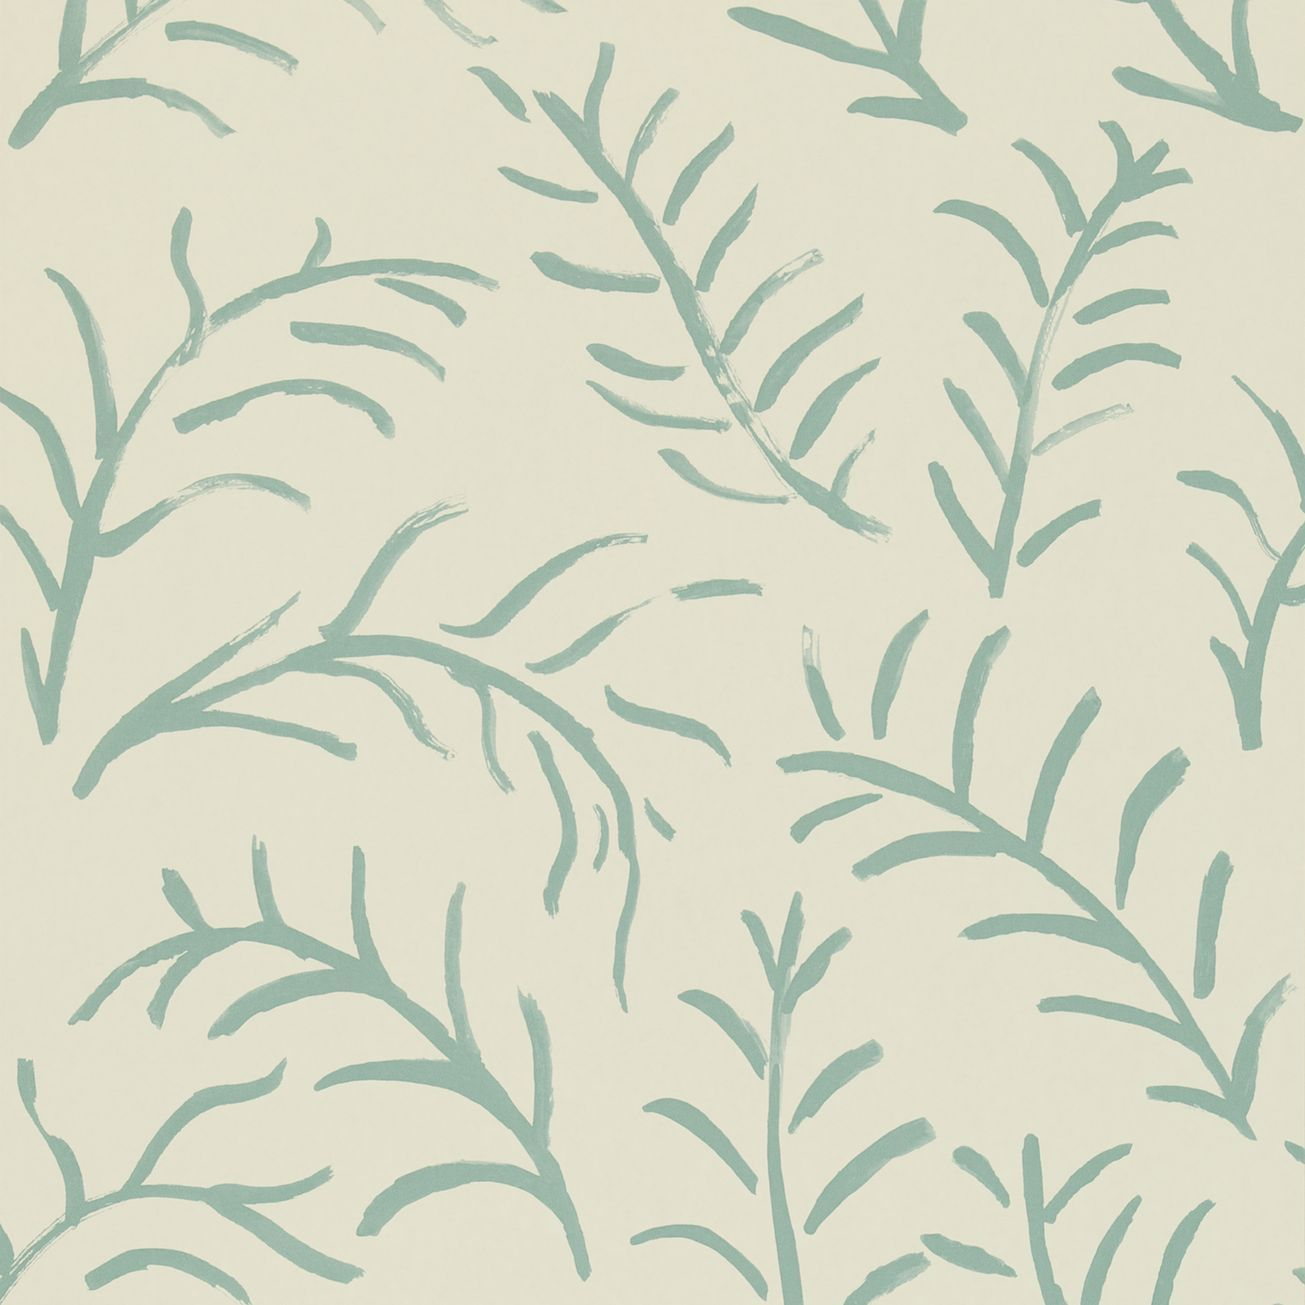 leaf wallpaper in ivory/teal from sanderson. bloomsbury collection.